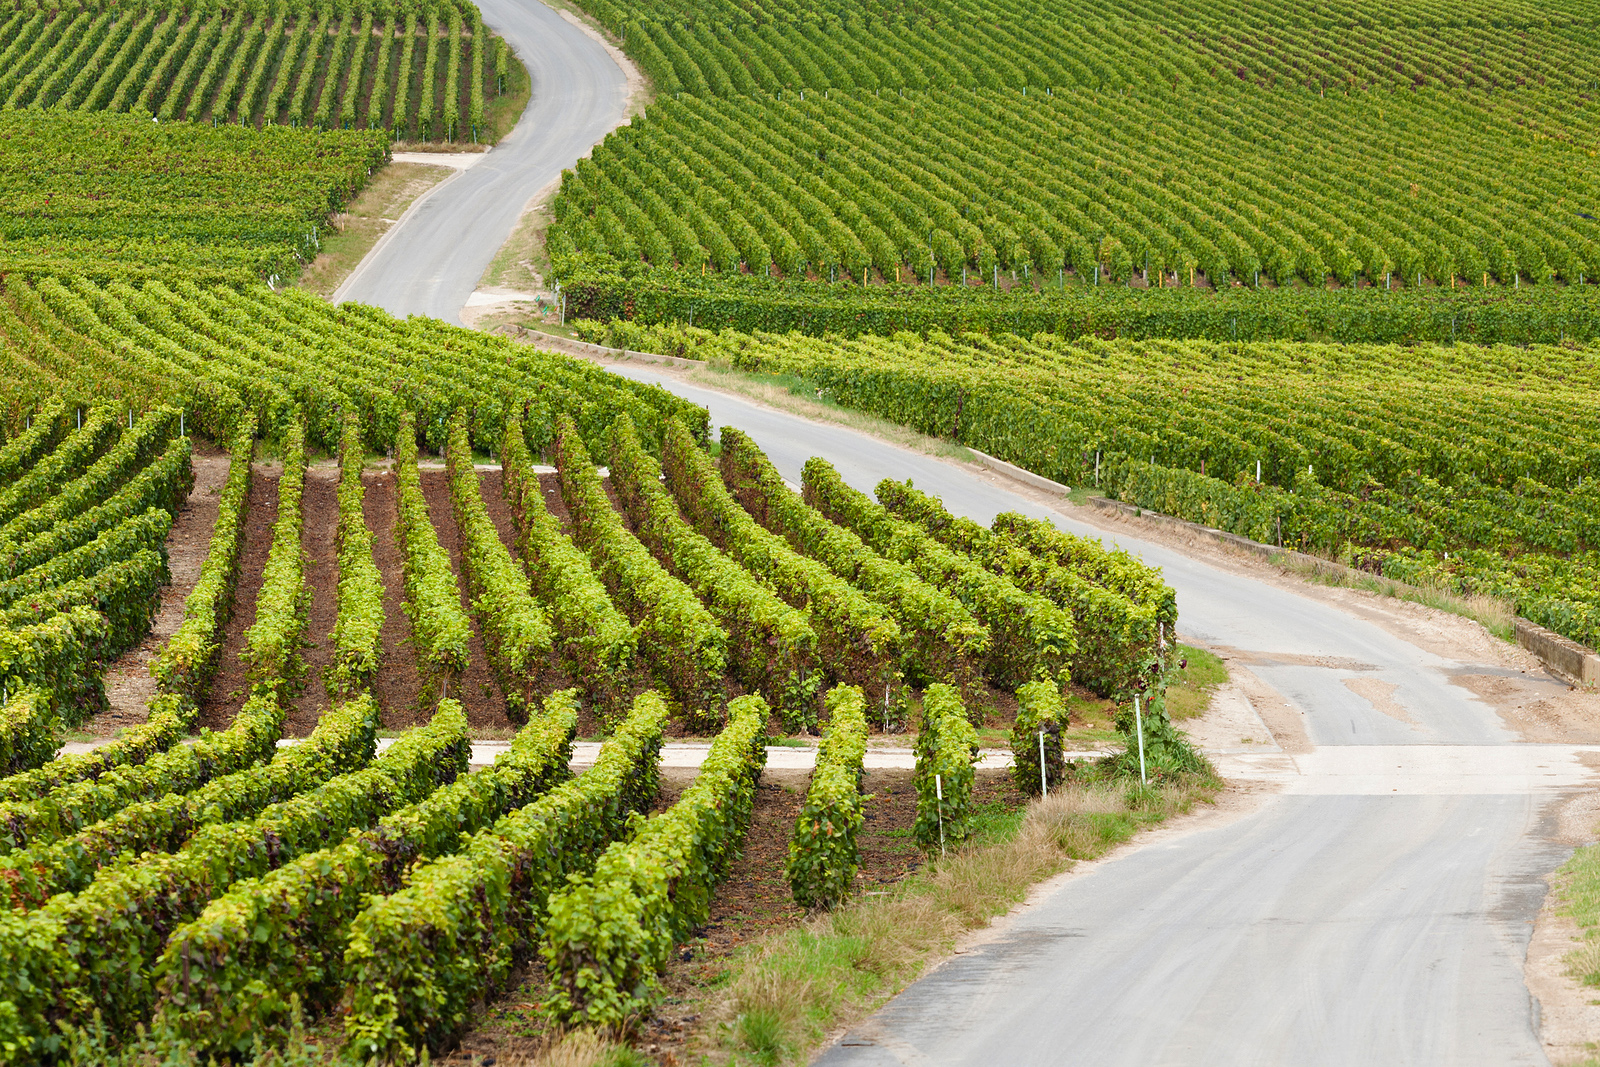 A road zig zags through a vineyard in the Champagne Region of France.